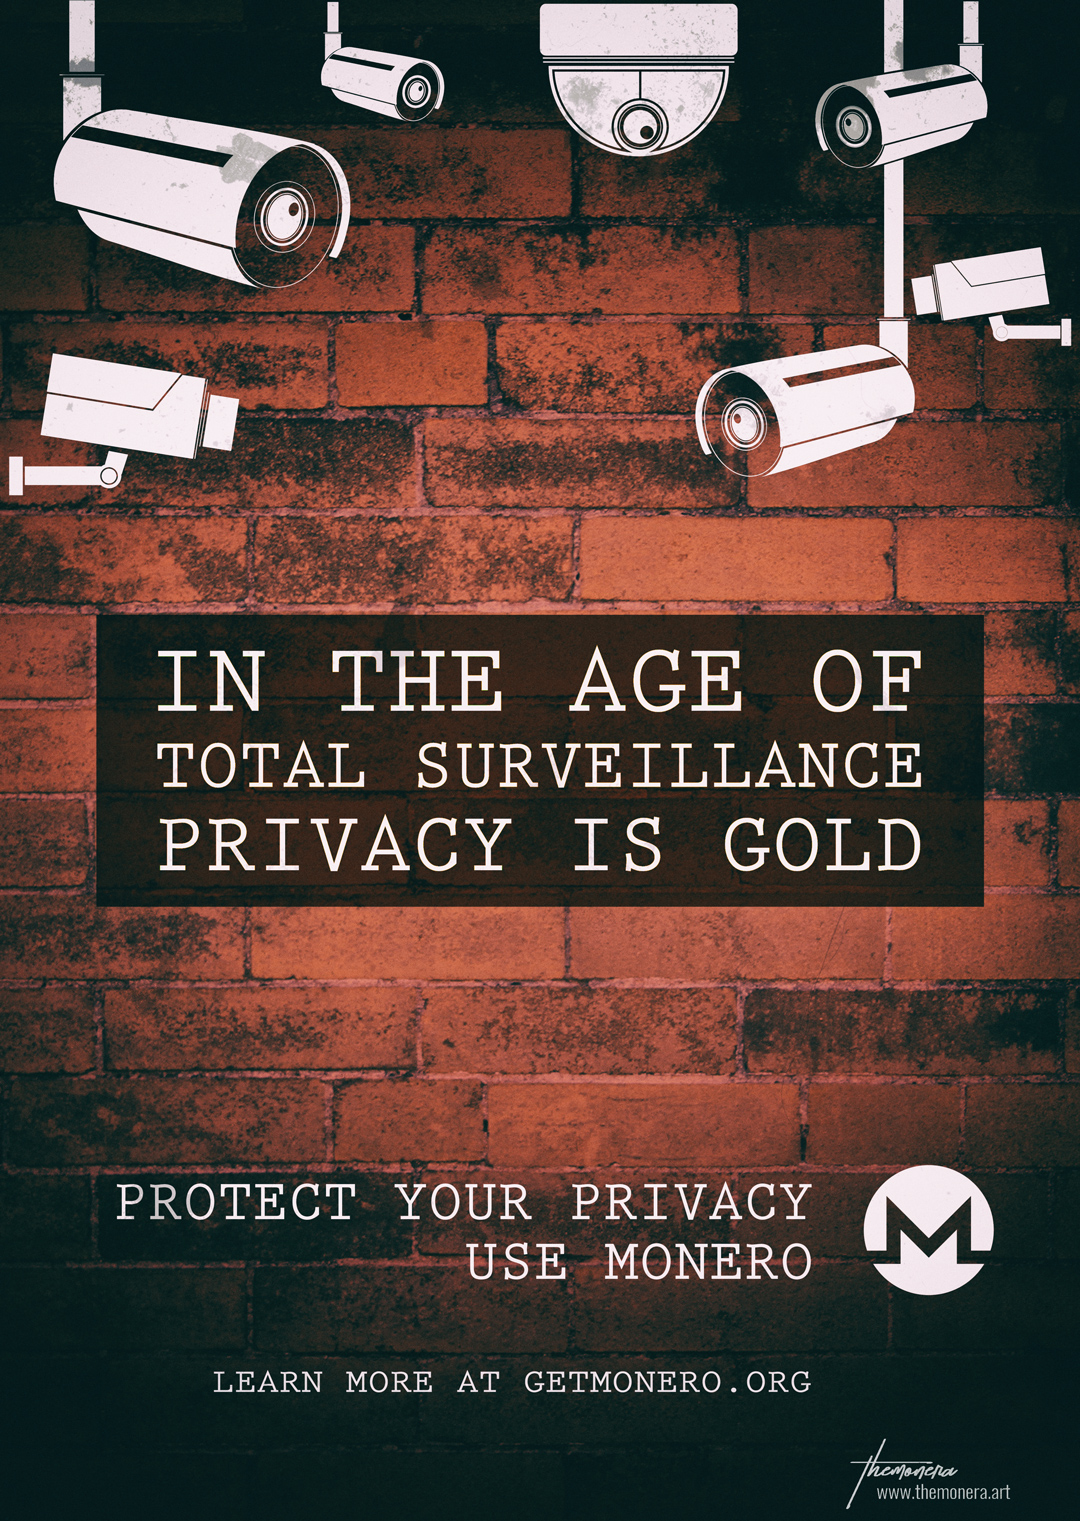 Poster about Privacy. In the Age of total surveillance, Privacy is Gold